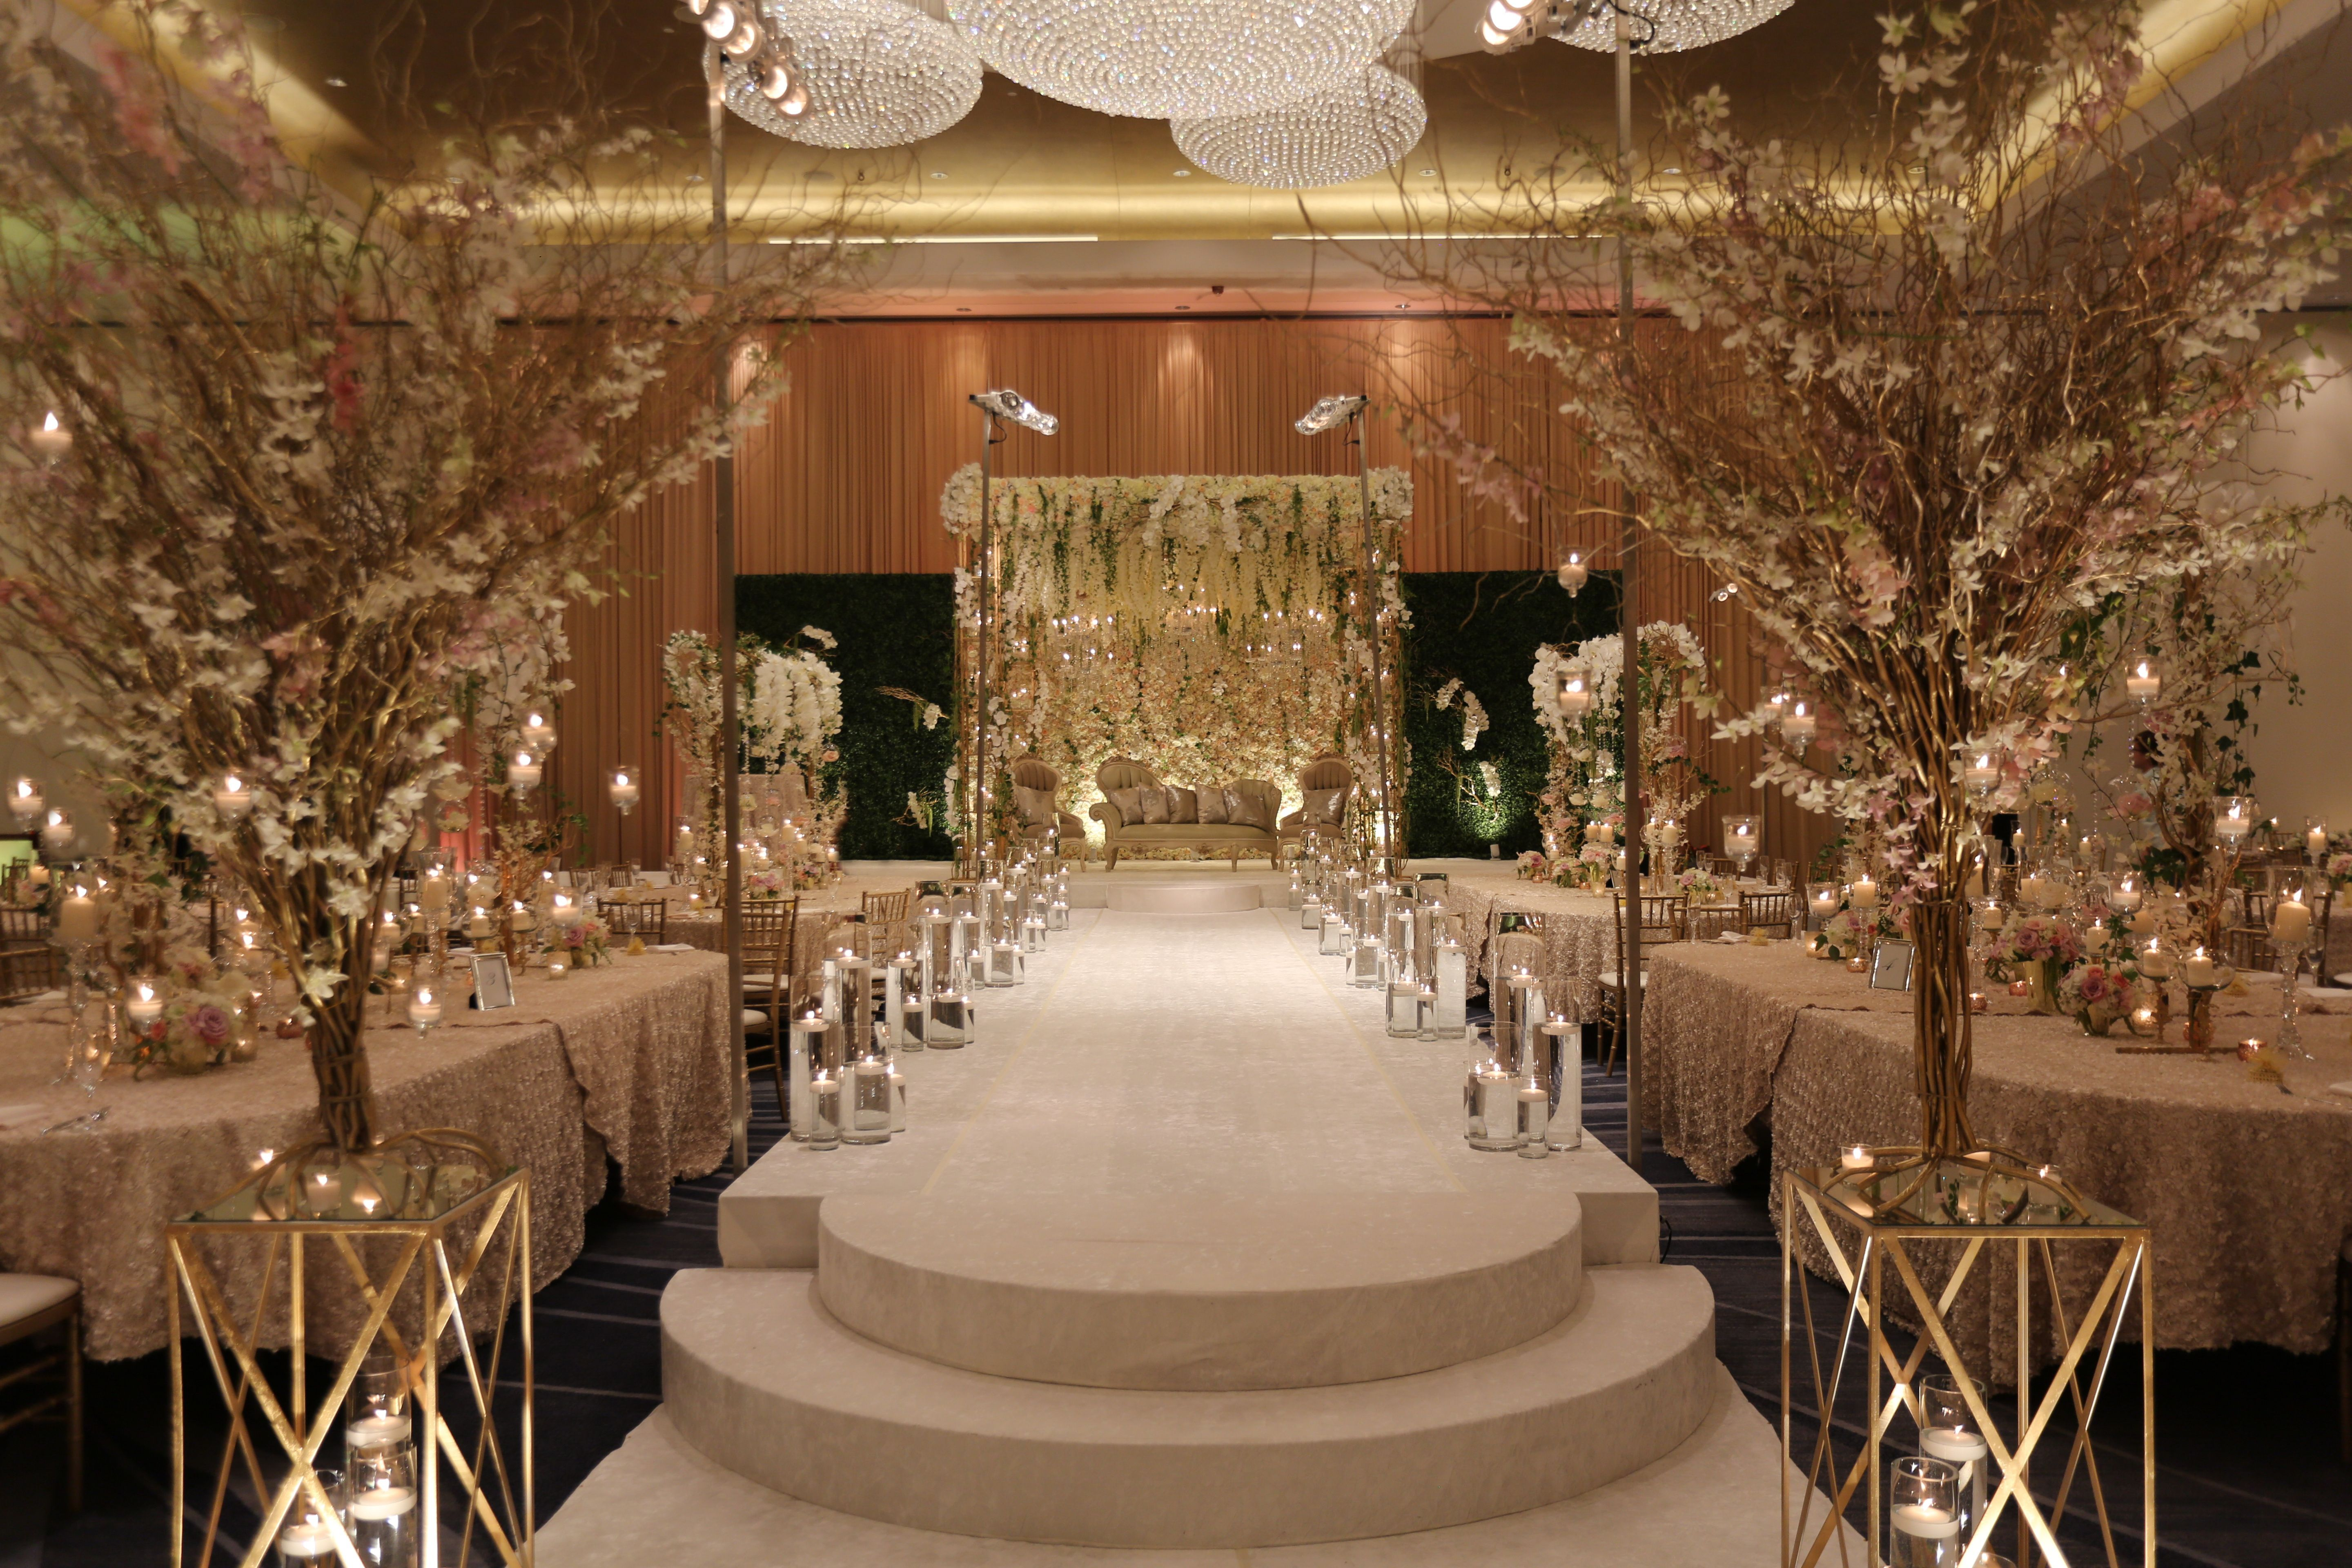 Wedding decorations tulle and lights  Pin by Yanni Design Studio on Hotel Ceremony  Pinterest  Wedding